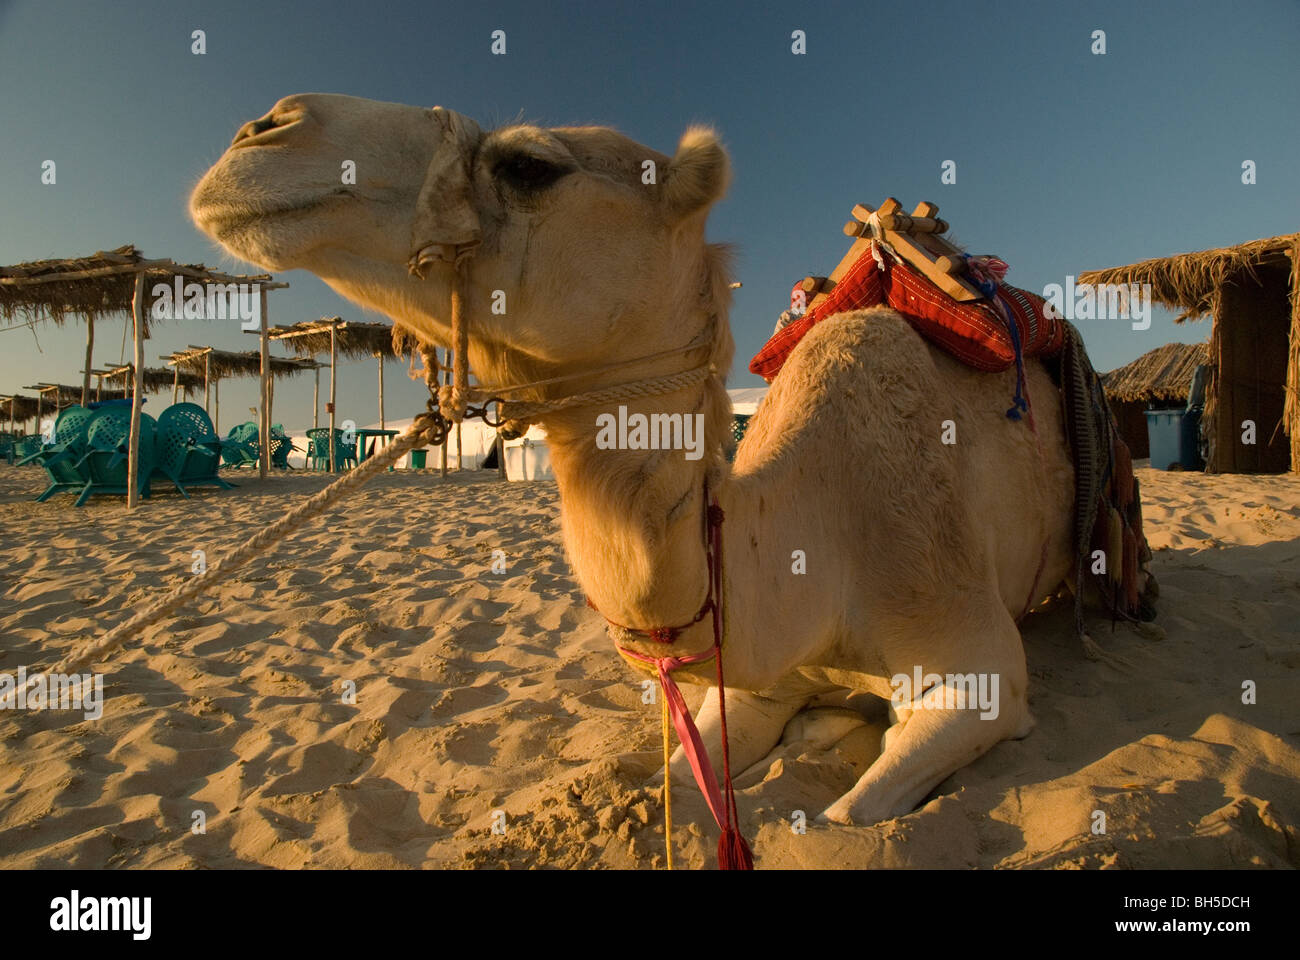 Close up, wide-angle landscape shot of a camel sitting in the sand with warm sunset lighting. - Stock Image